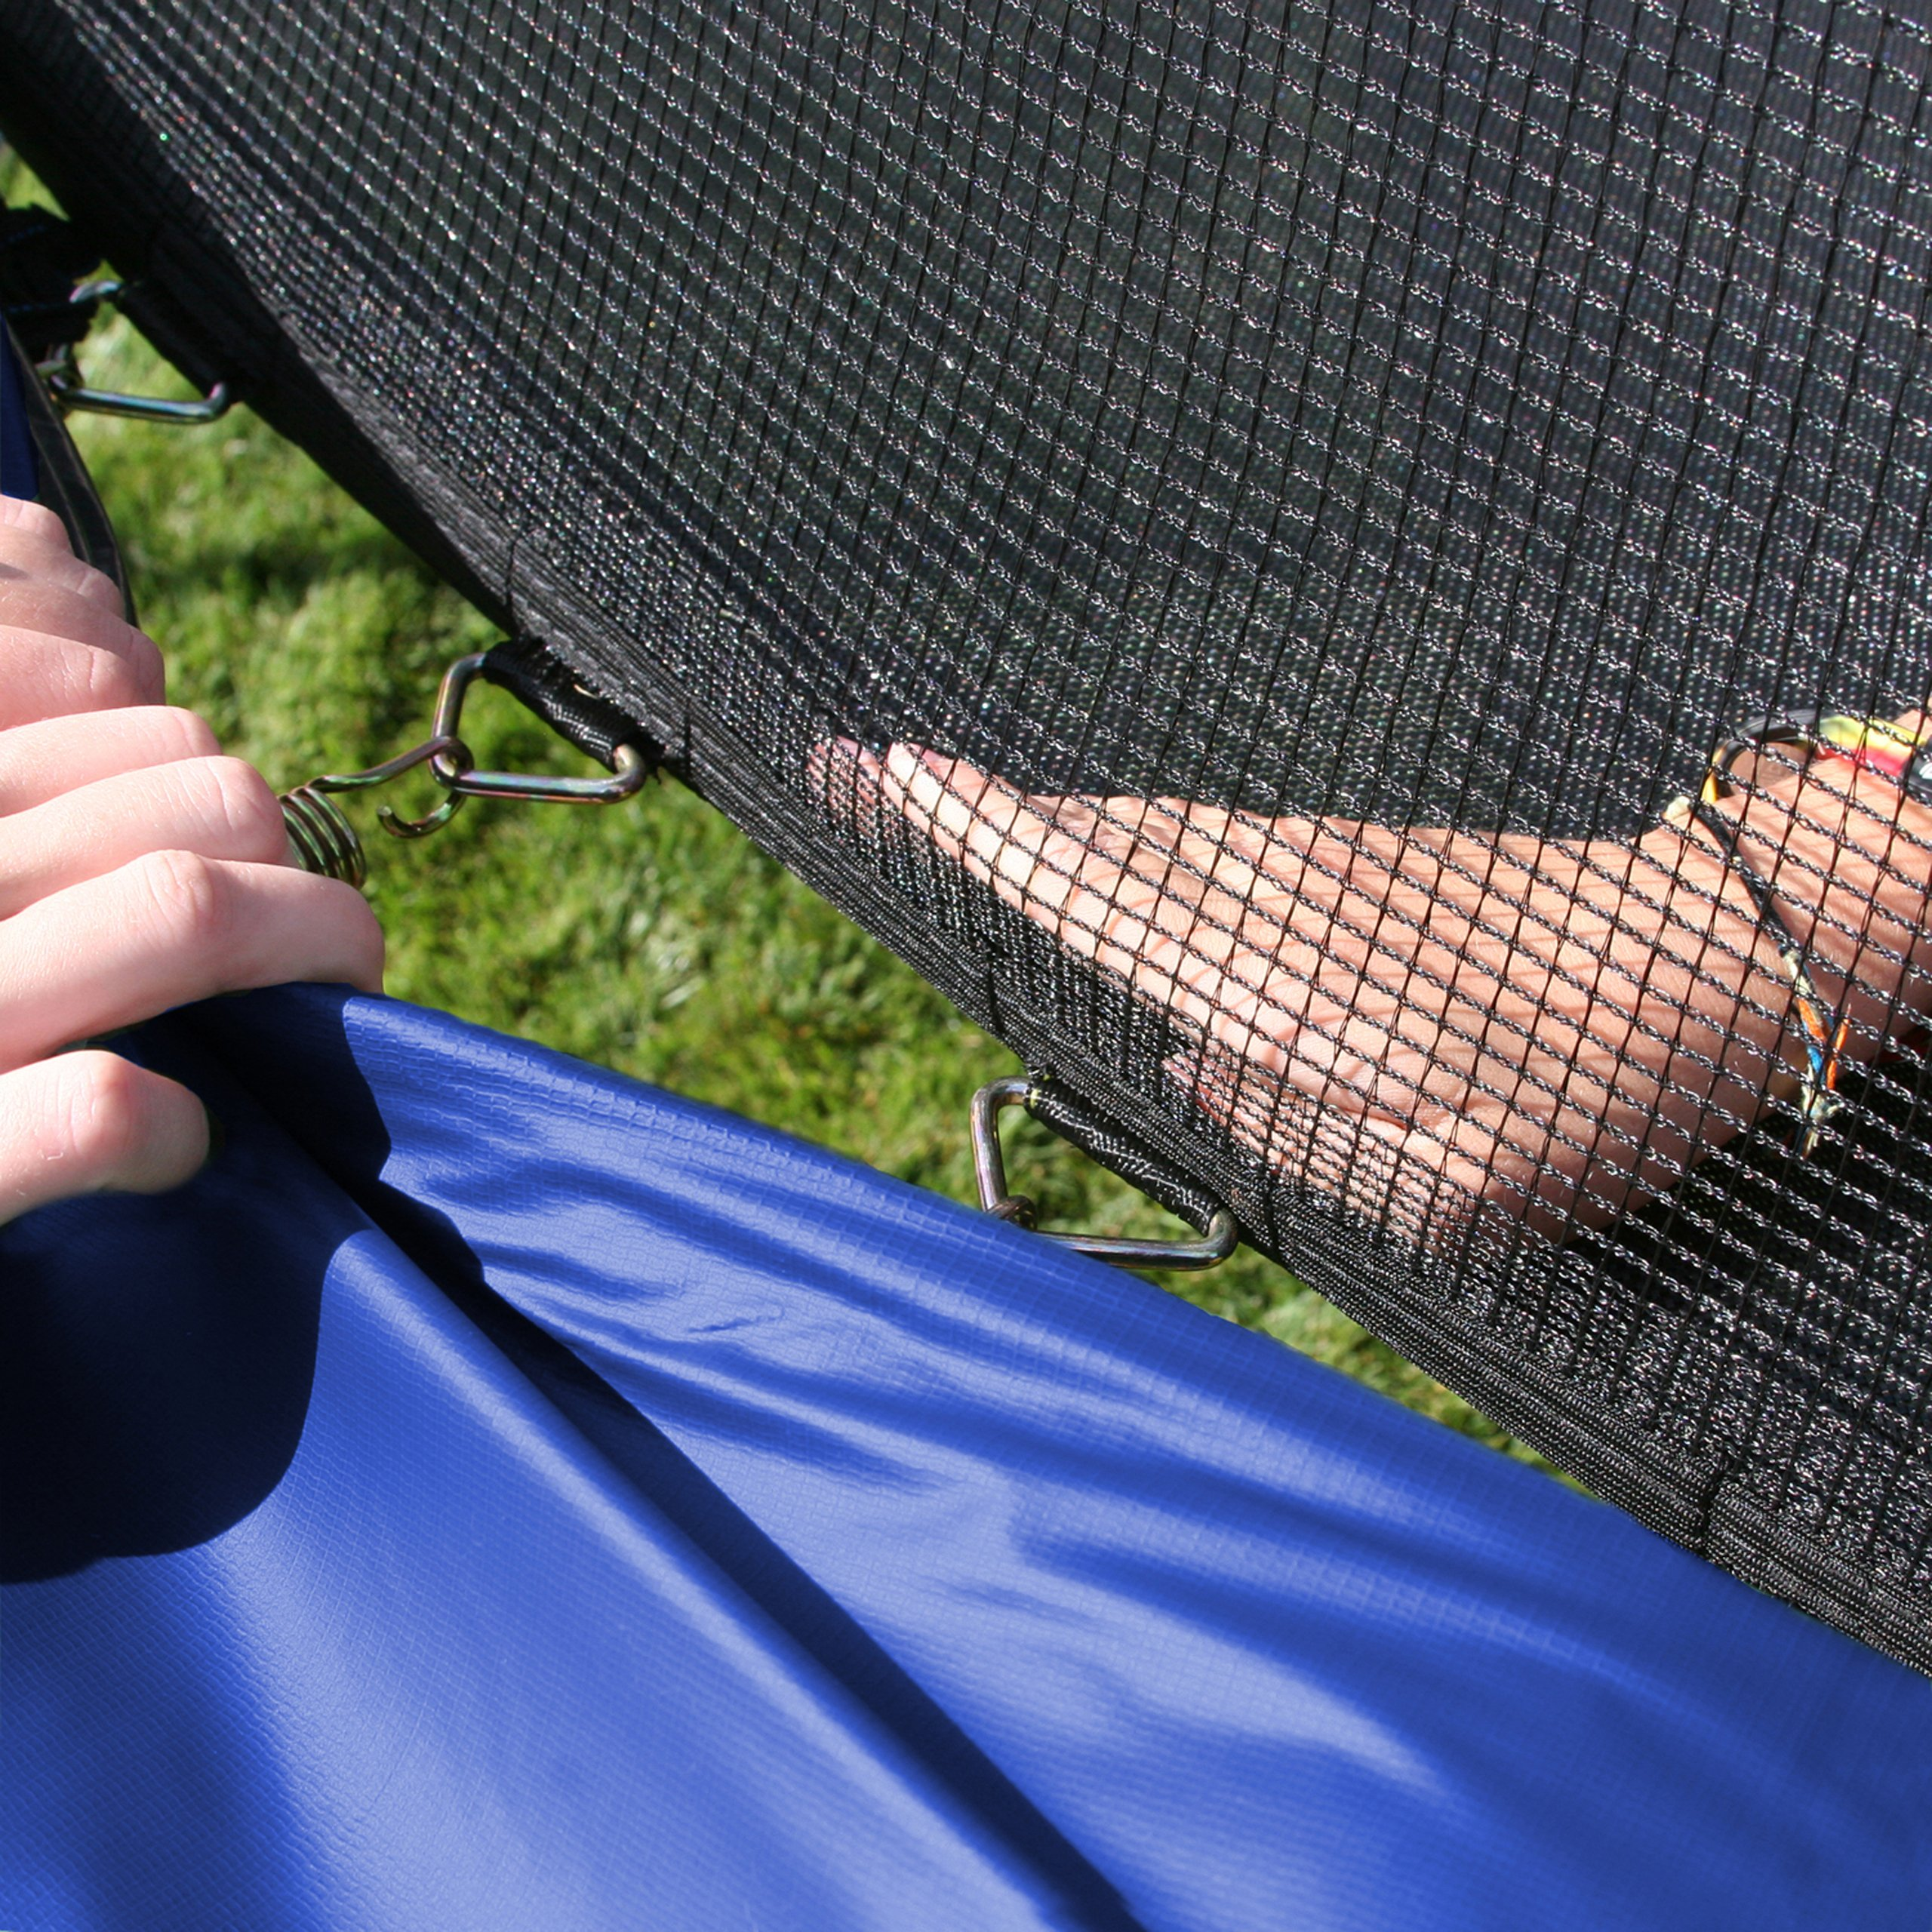 Skywalker Trampolines 12-Feet Round Trampoline and Enclosure with Spring Pad, Blue by Skywalker Trampolines (Image #2)